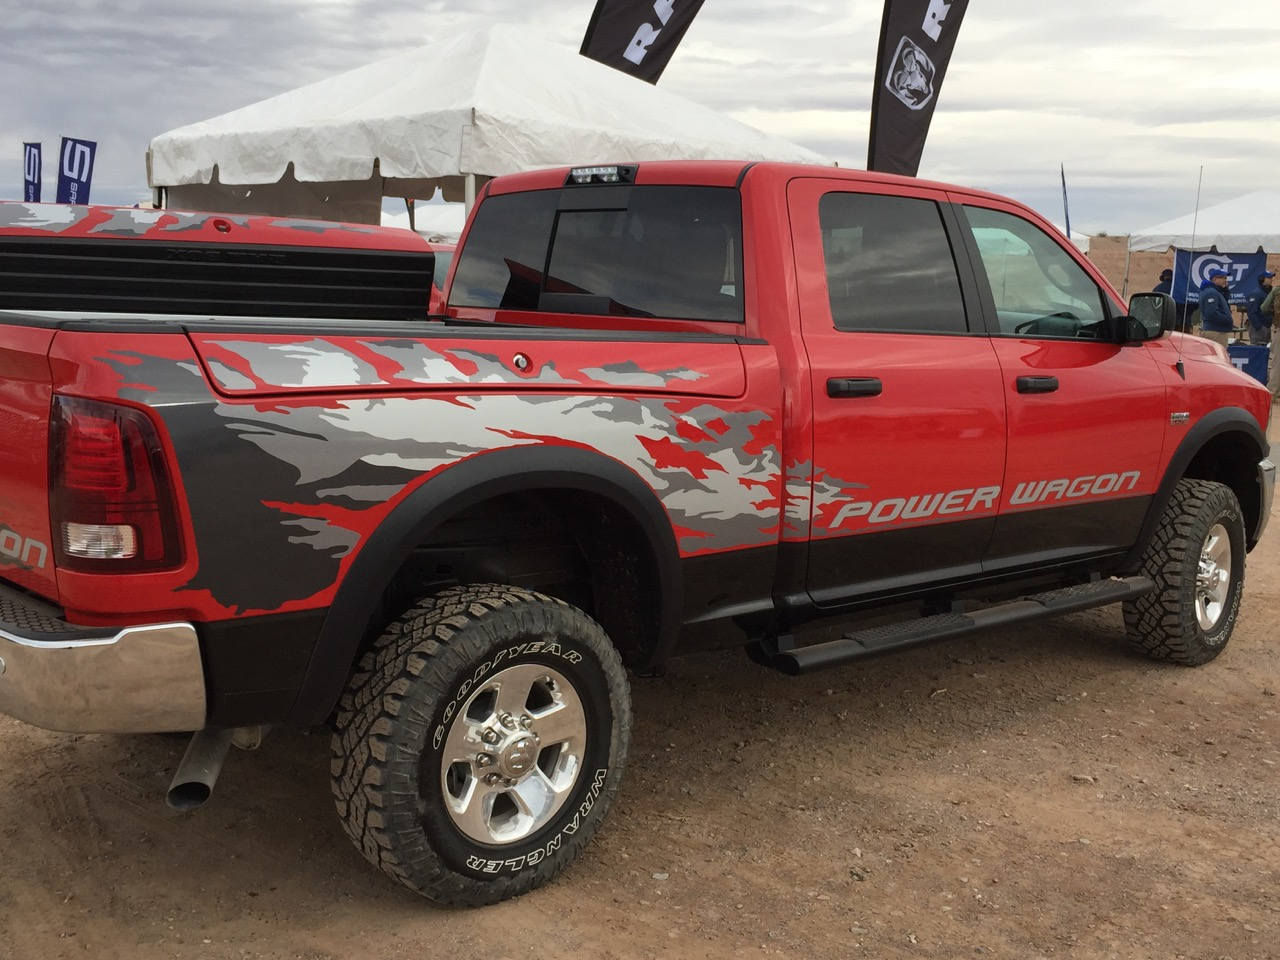 SHOT 2016 Range Day: Ram's 2016 Power Wagon is a Gun Case Shaped Like a Truck